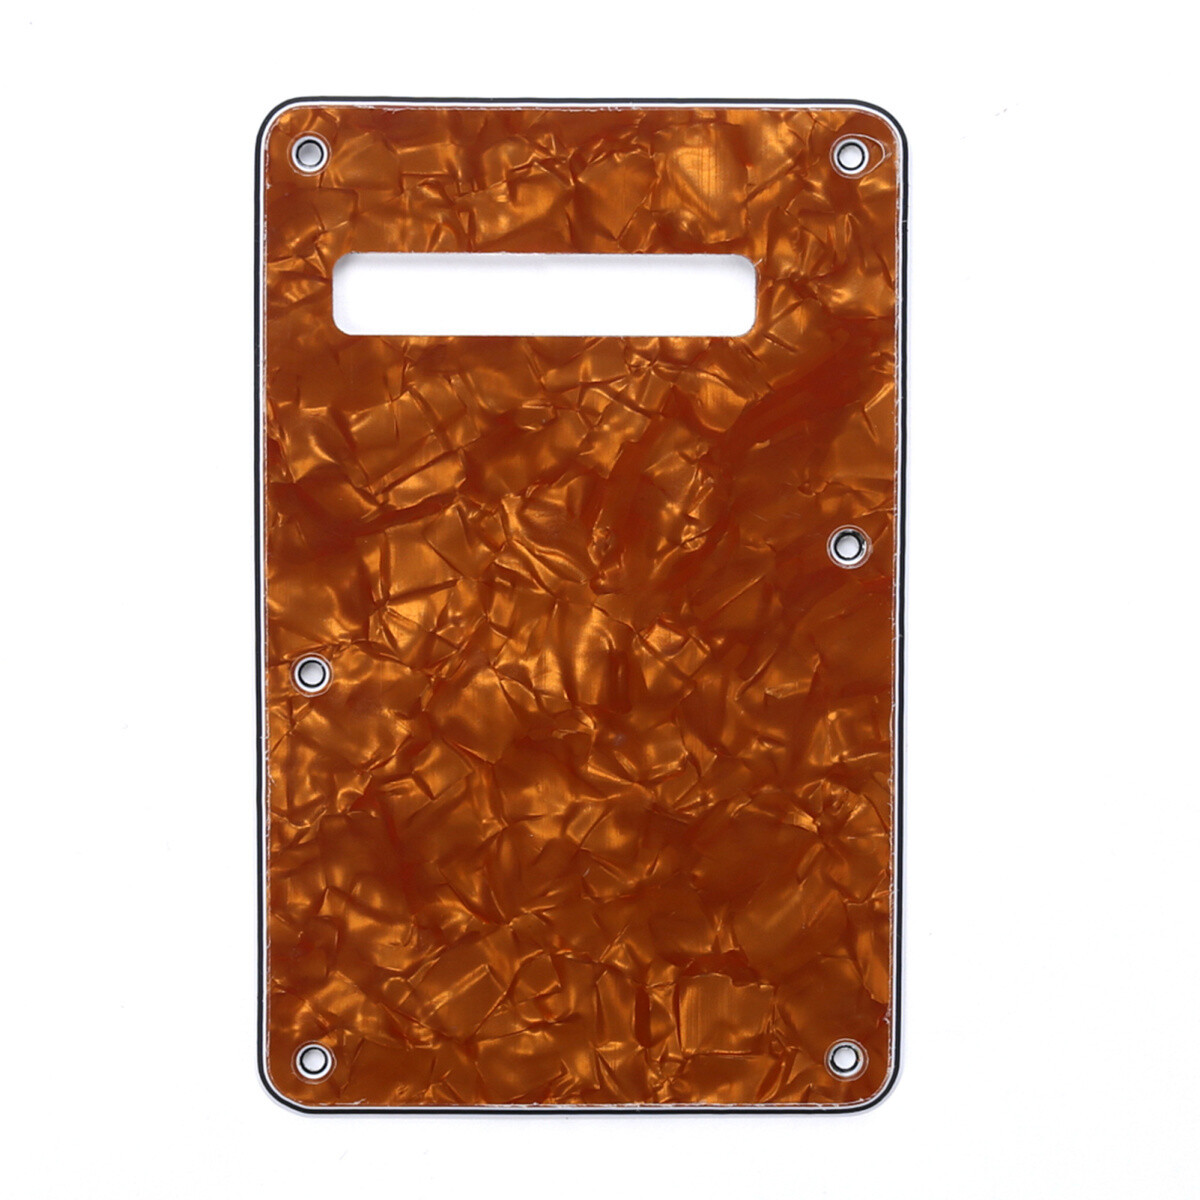 Brio Pearl Earthly Bronze Modern Style Back Plate Tremolo Cover 4 ply - US/Mexican Fender®Strat® Fit